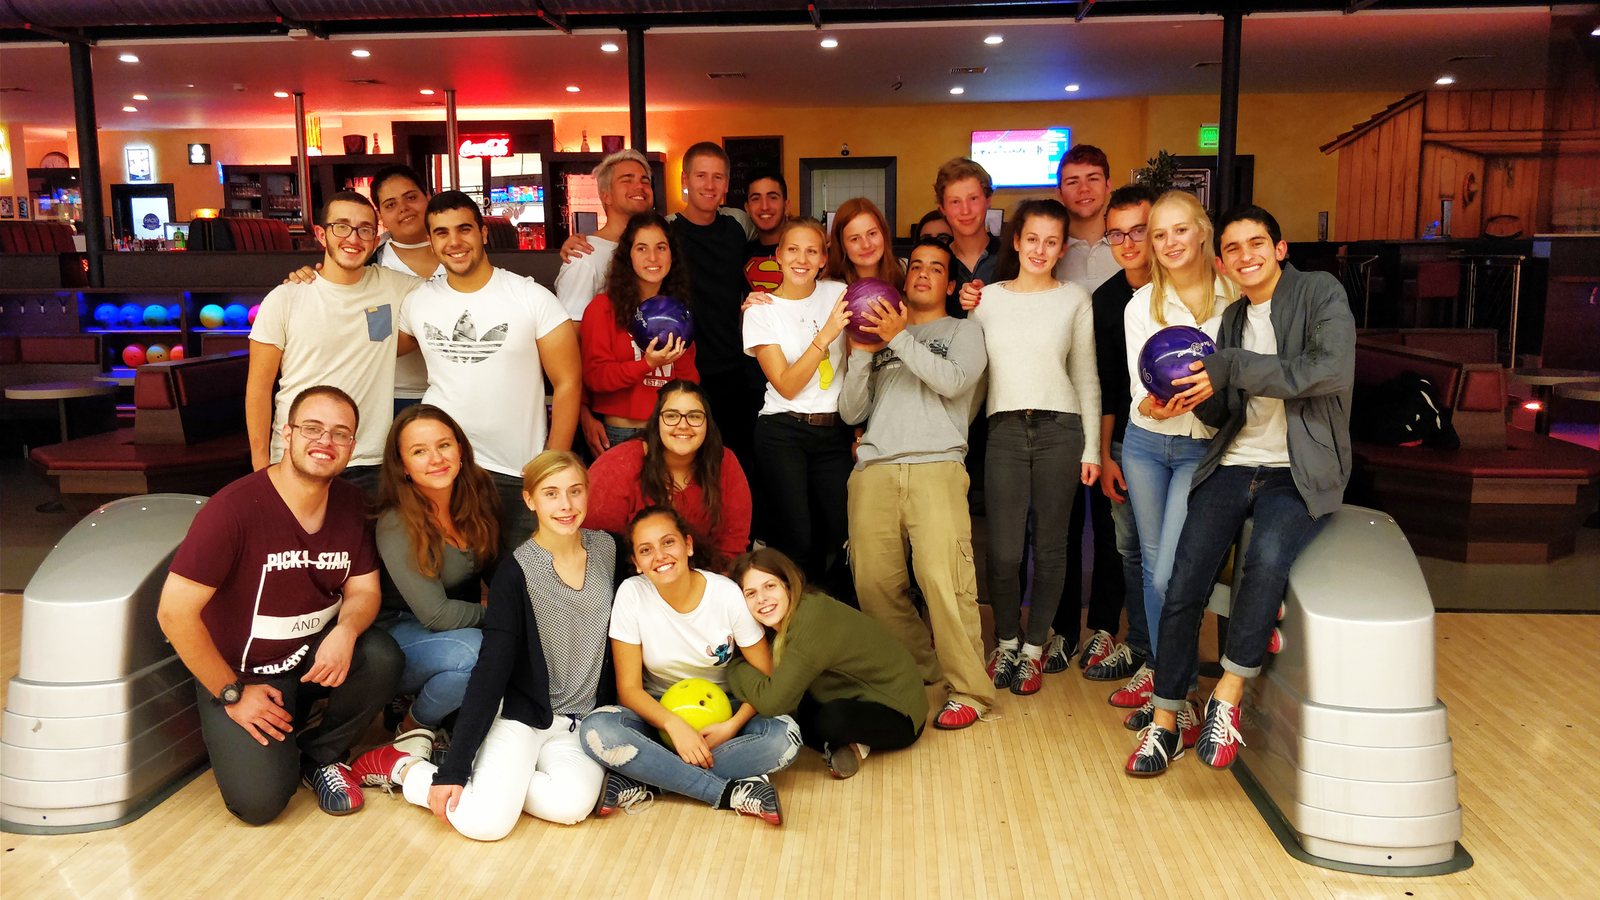 Israel, Interact, IAC, Bad Homburg,Bowling Besuch, Hottenrott